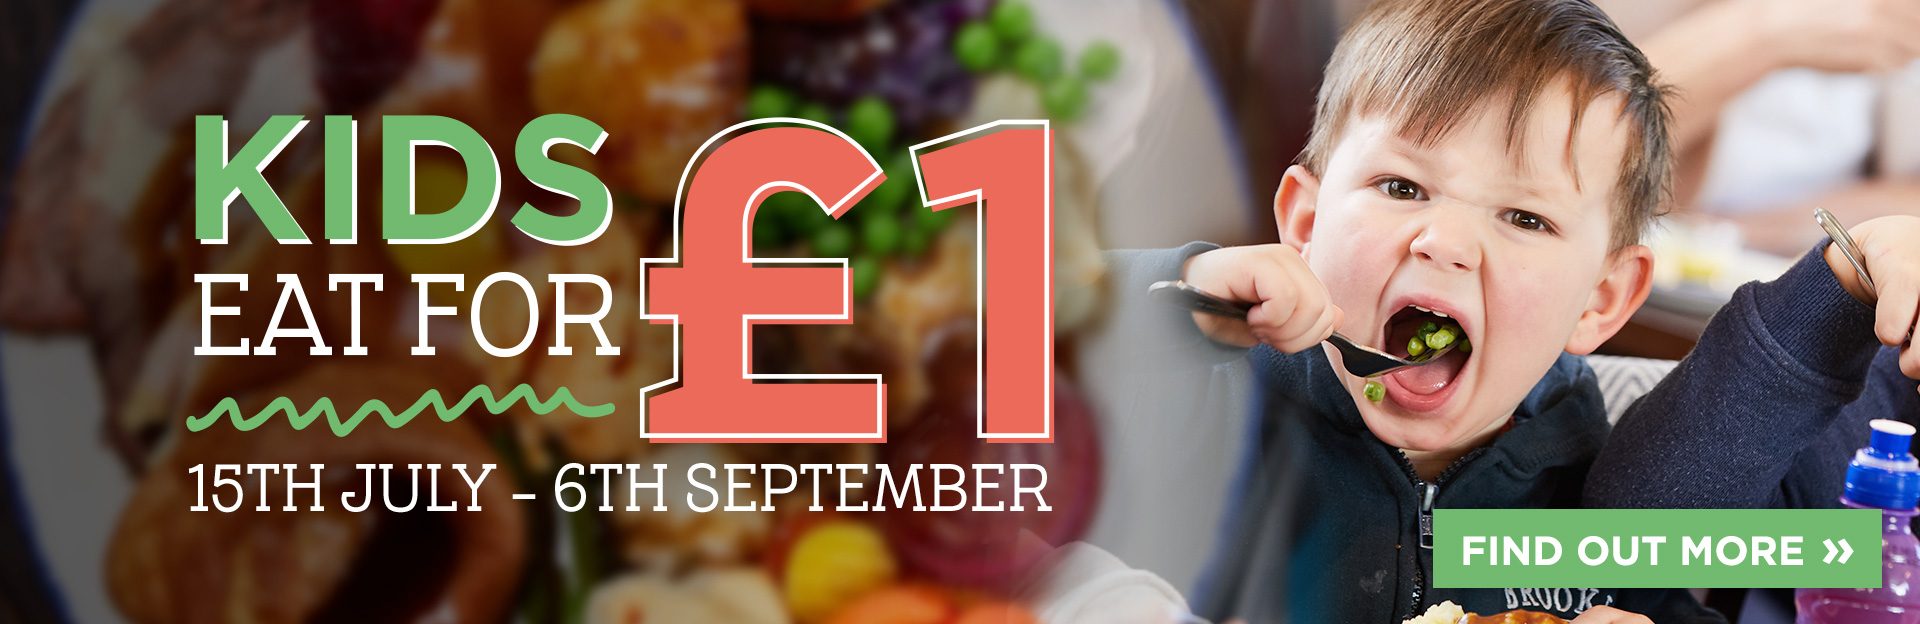 Kids Eat for £1 at The Copperfield